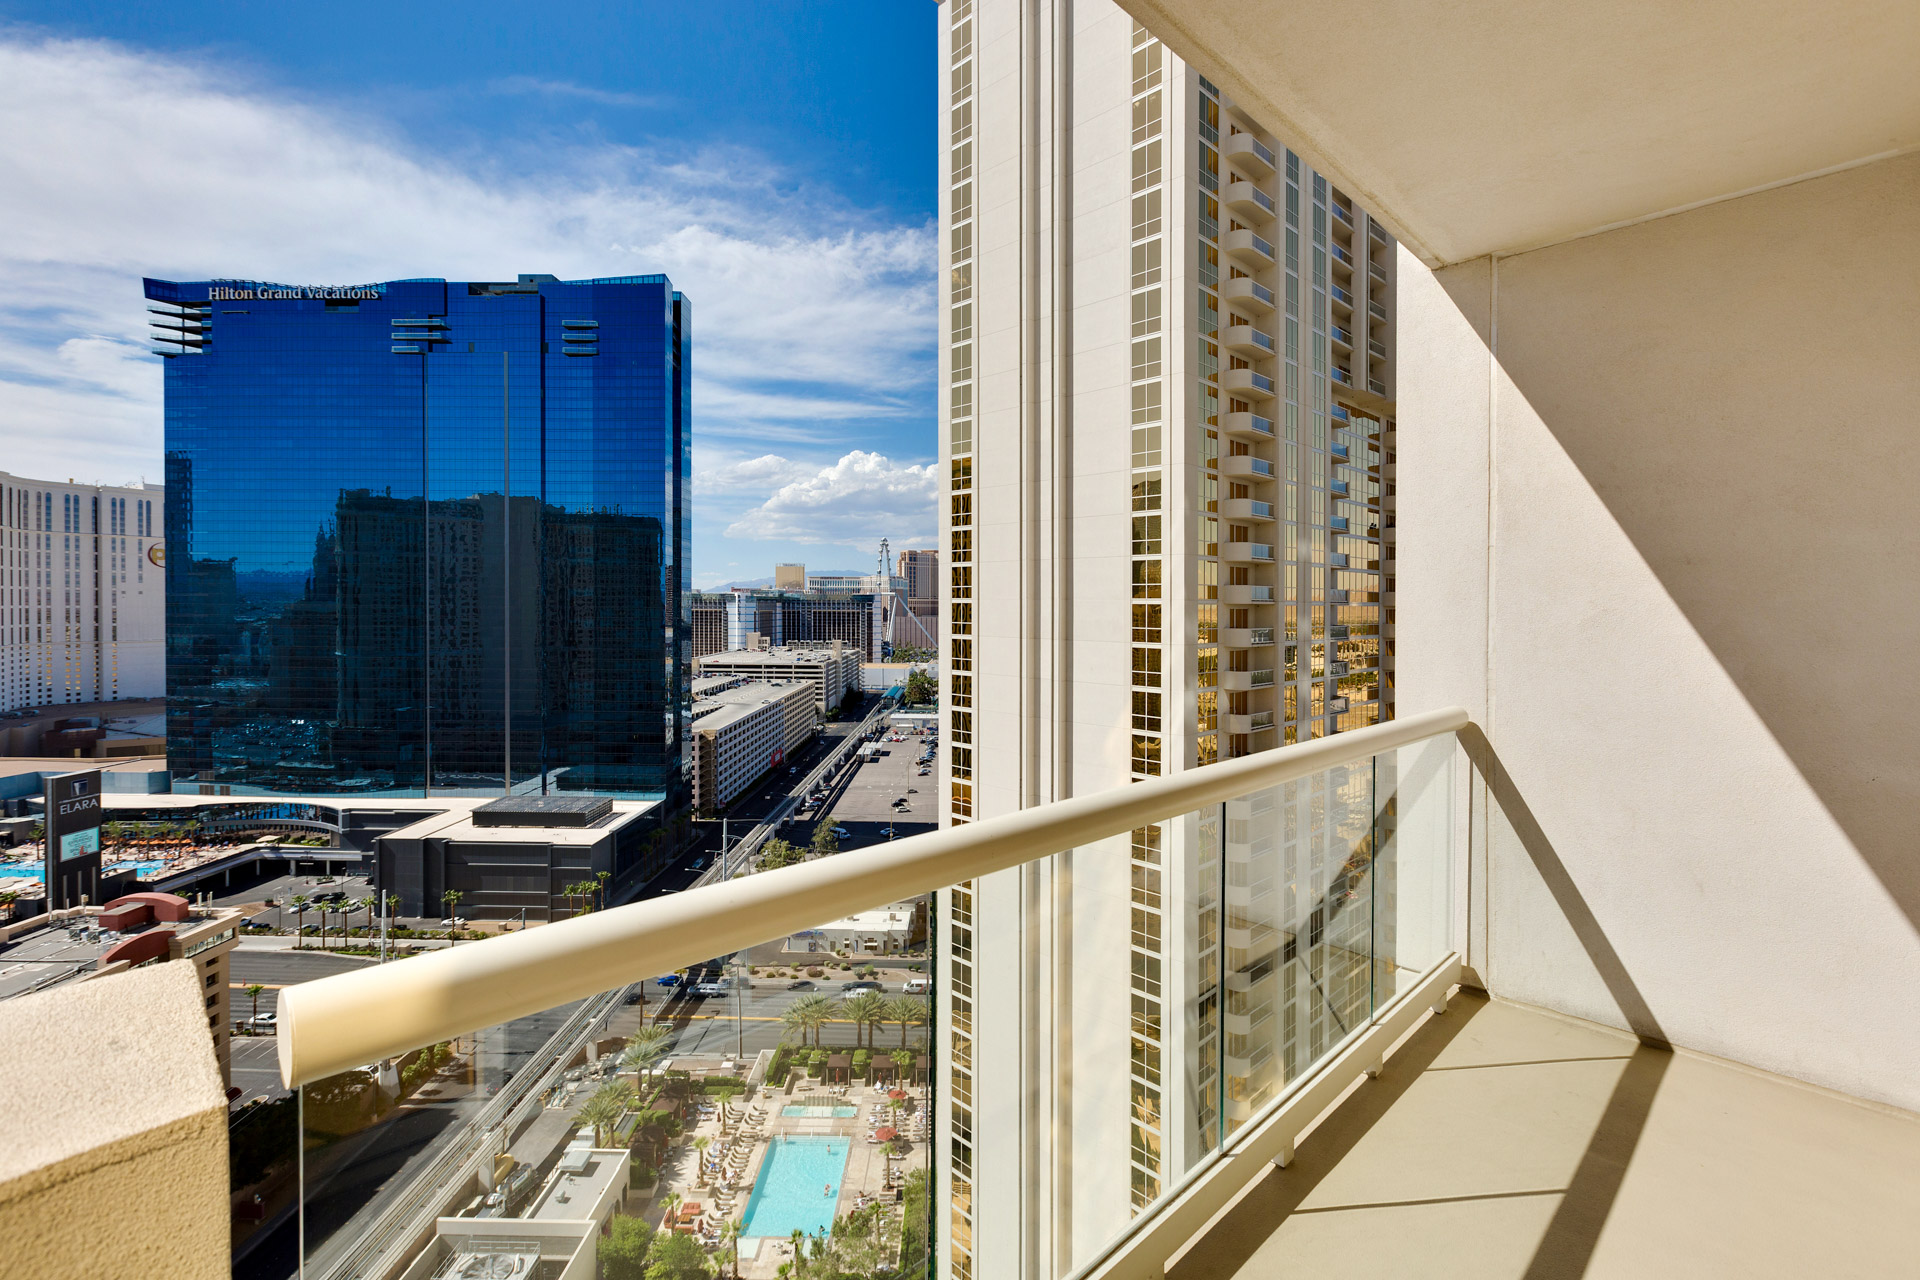 mgm-signature-condos-las-vegas-view-from-tower-b-21st-floor-strip-side